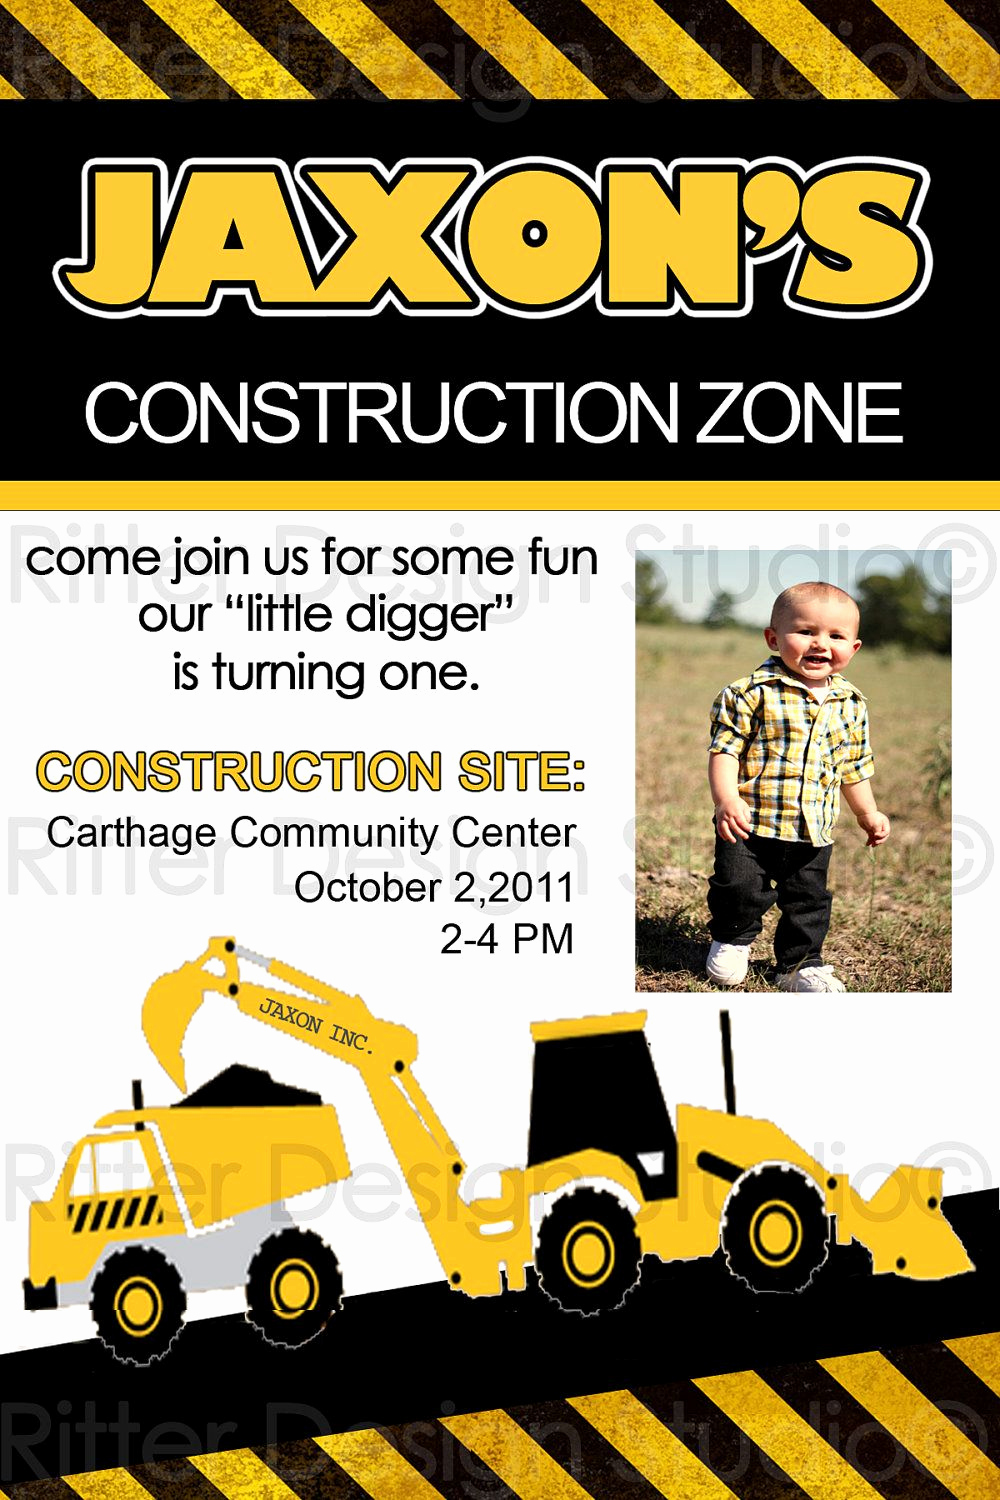 Construction Baby Shower Invitation Templates New Construction Zone Birthday Invitation Printable $16 00